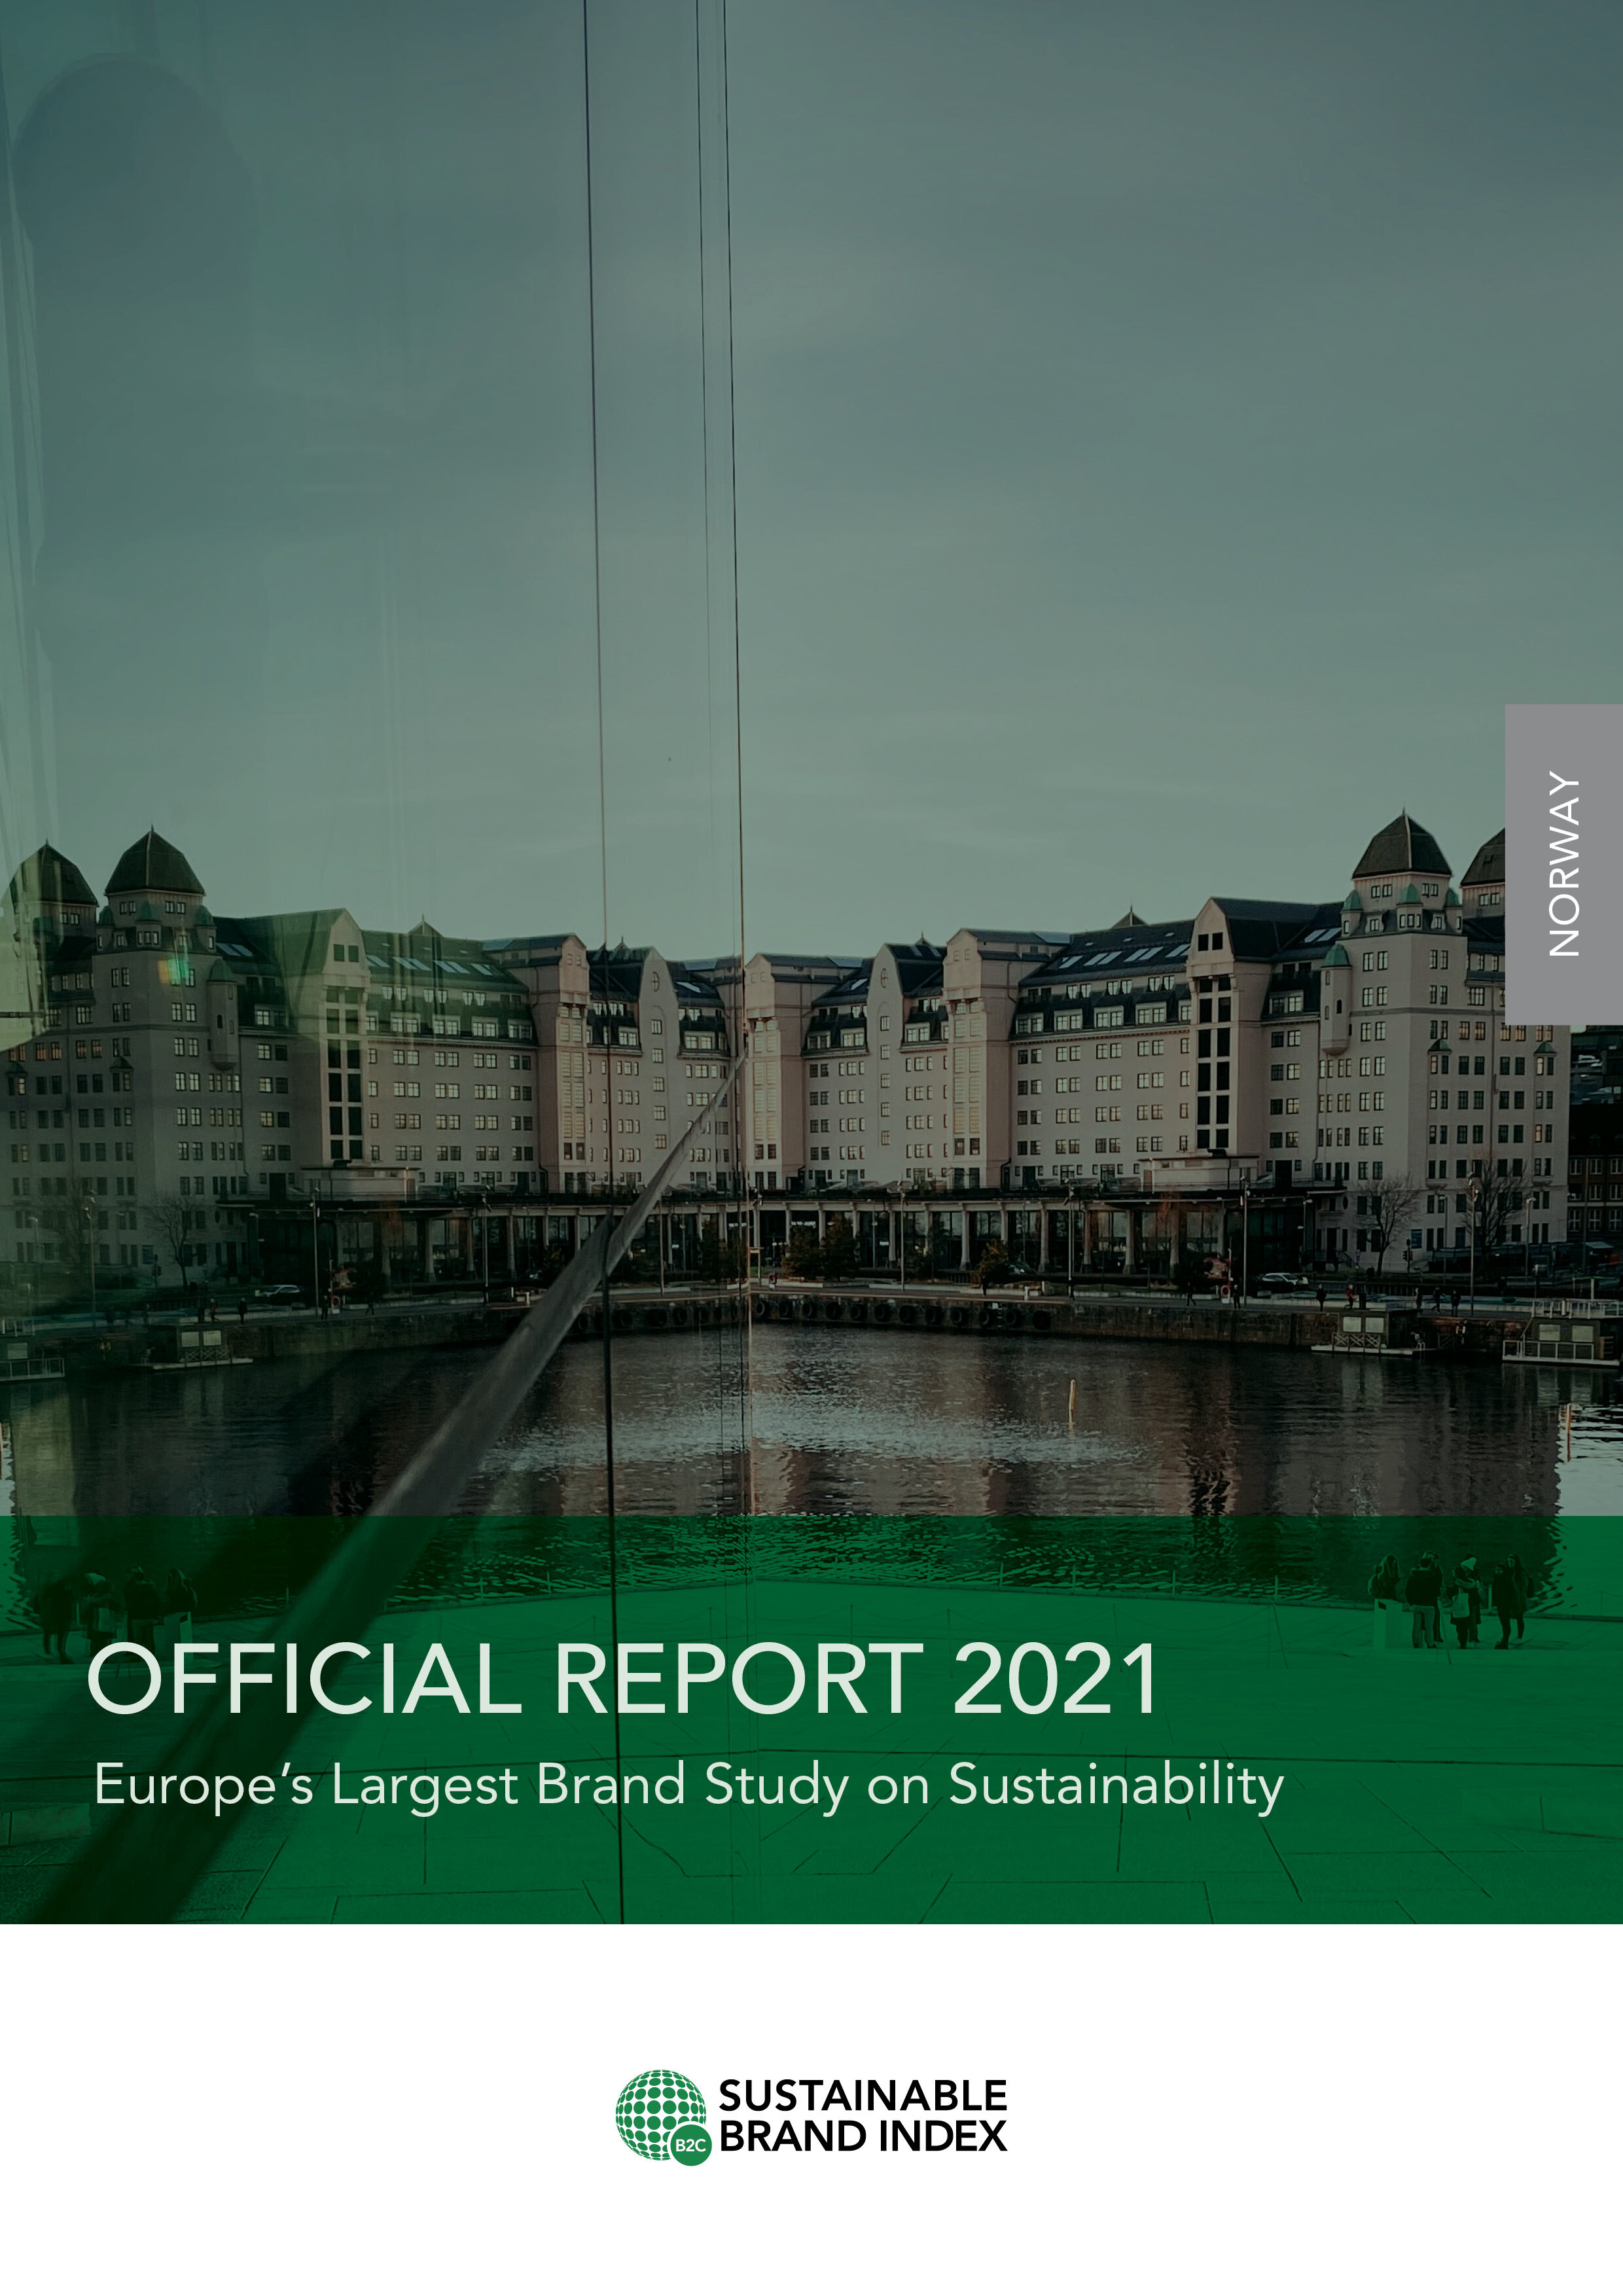 NO_Official Report_2021_Sustainable Brand Index.jpg